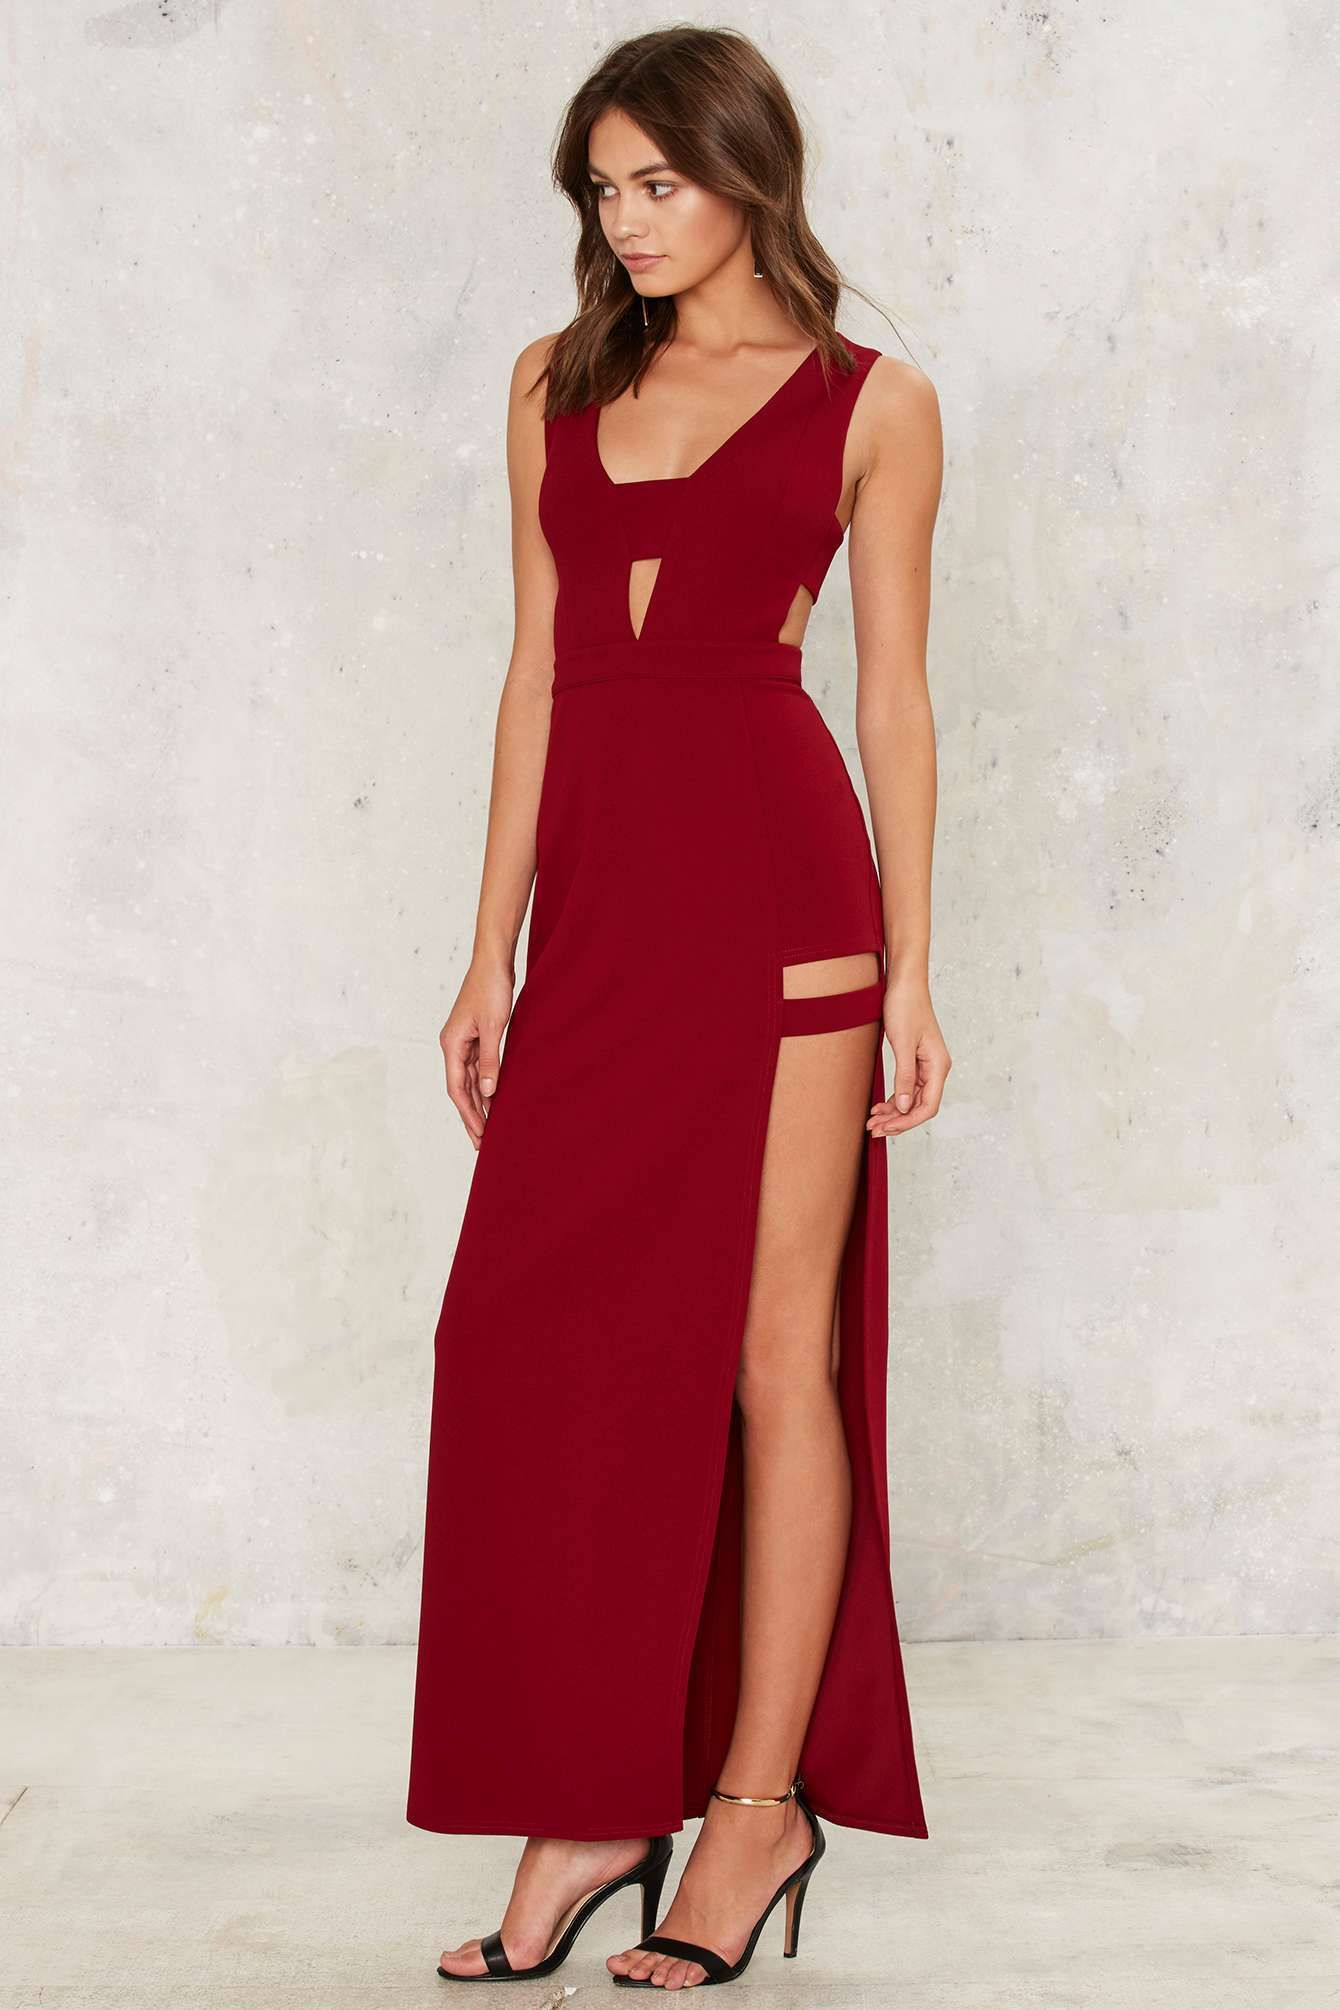 Twilight Zone Cut-Out Dress | Shop Clothes at Nasty Gal! | F. Store ...